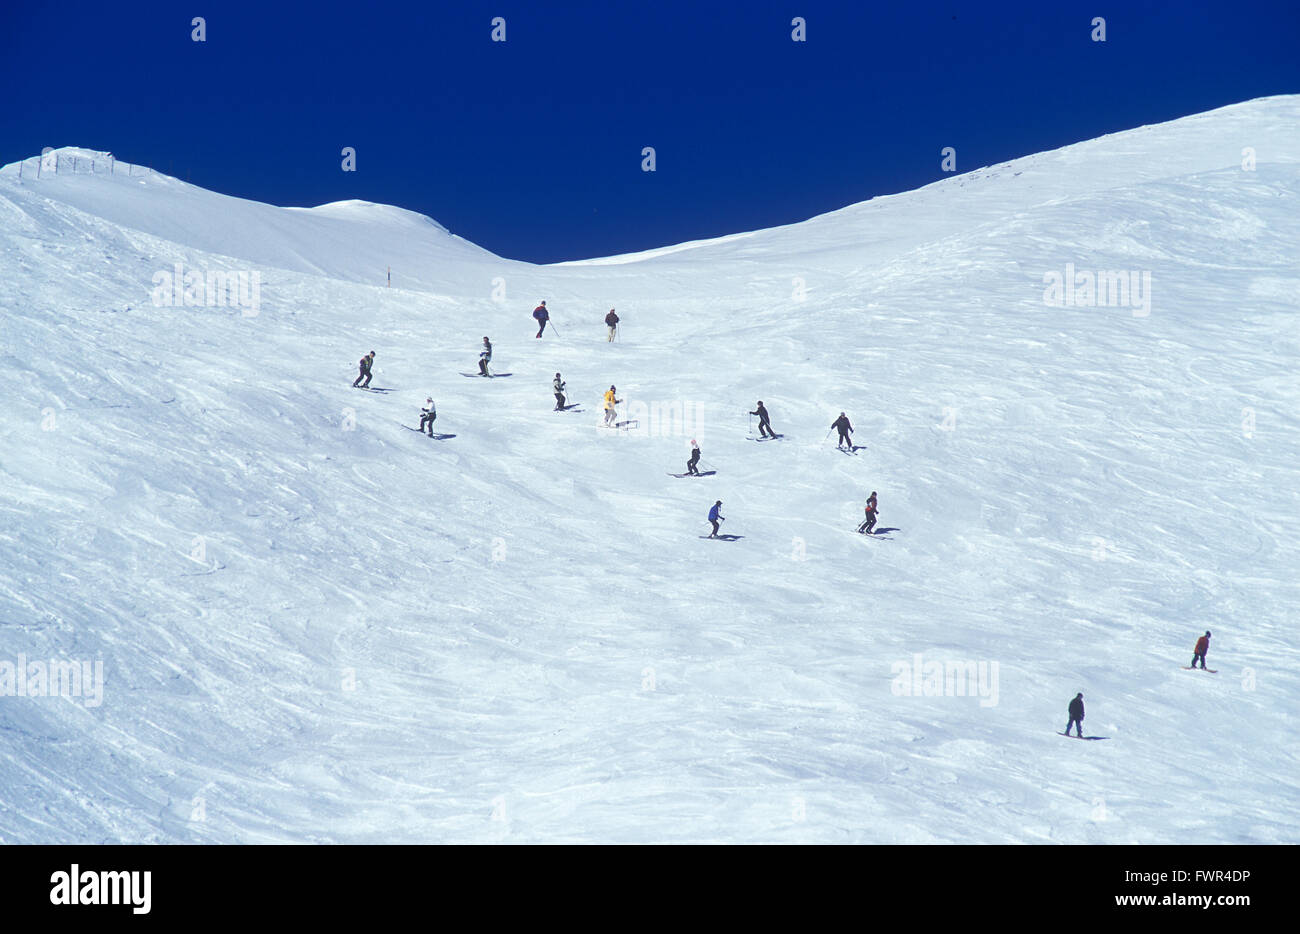 Tracked out off piste - Stock Image